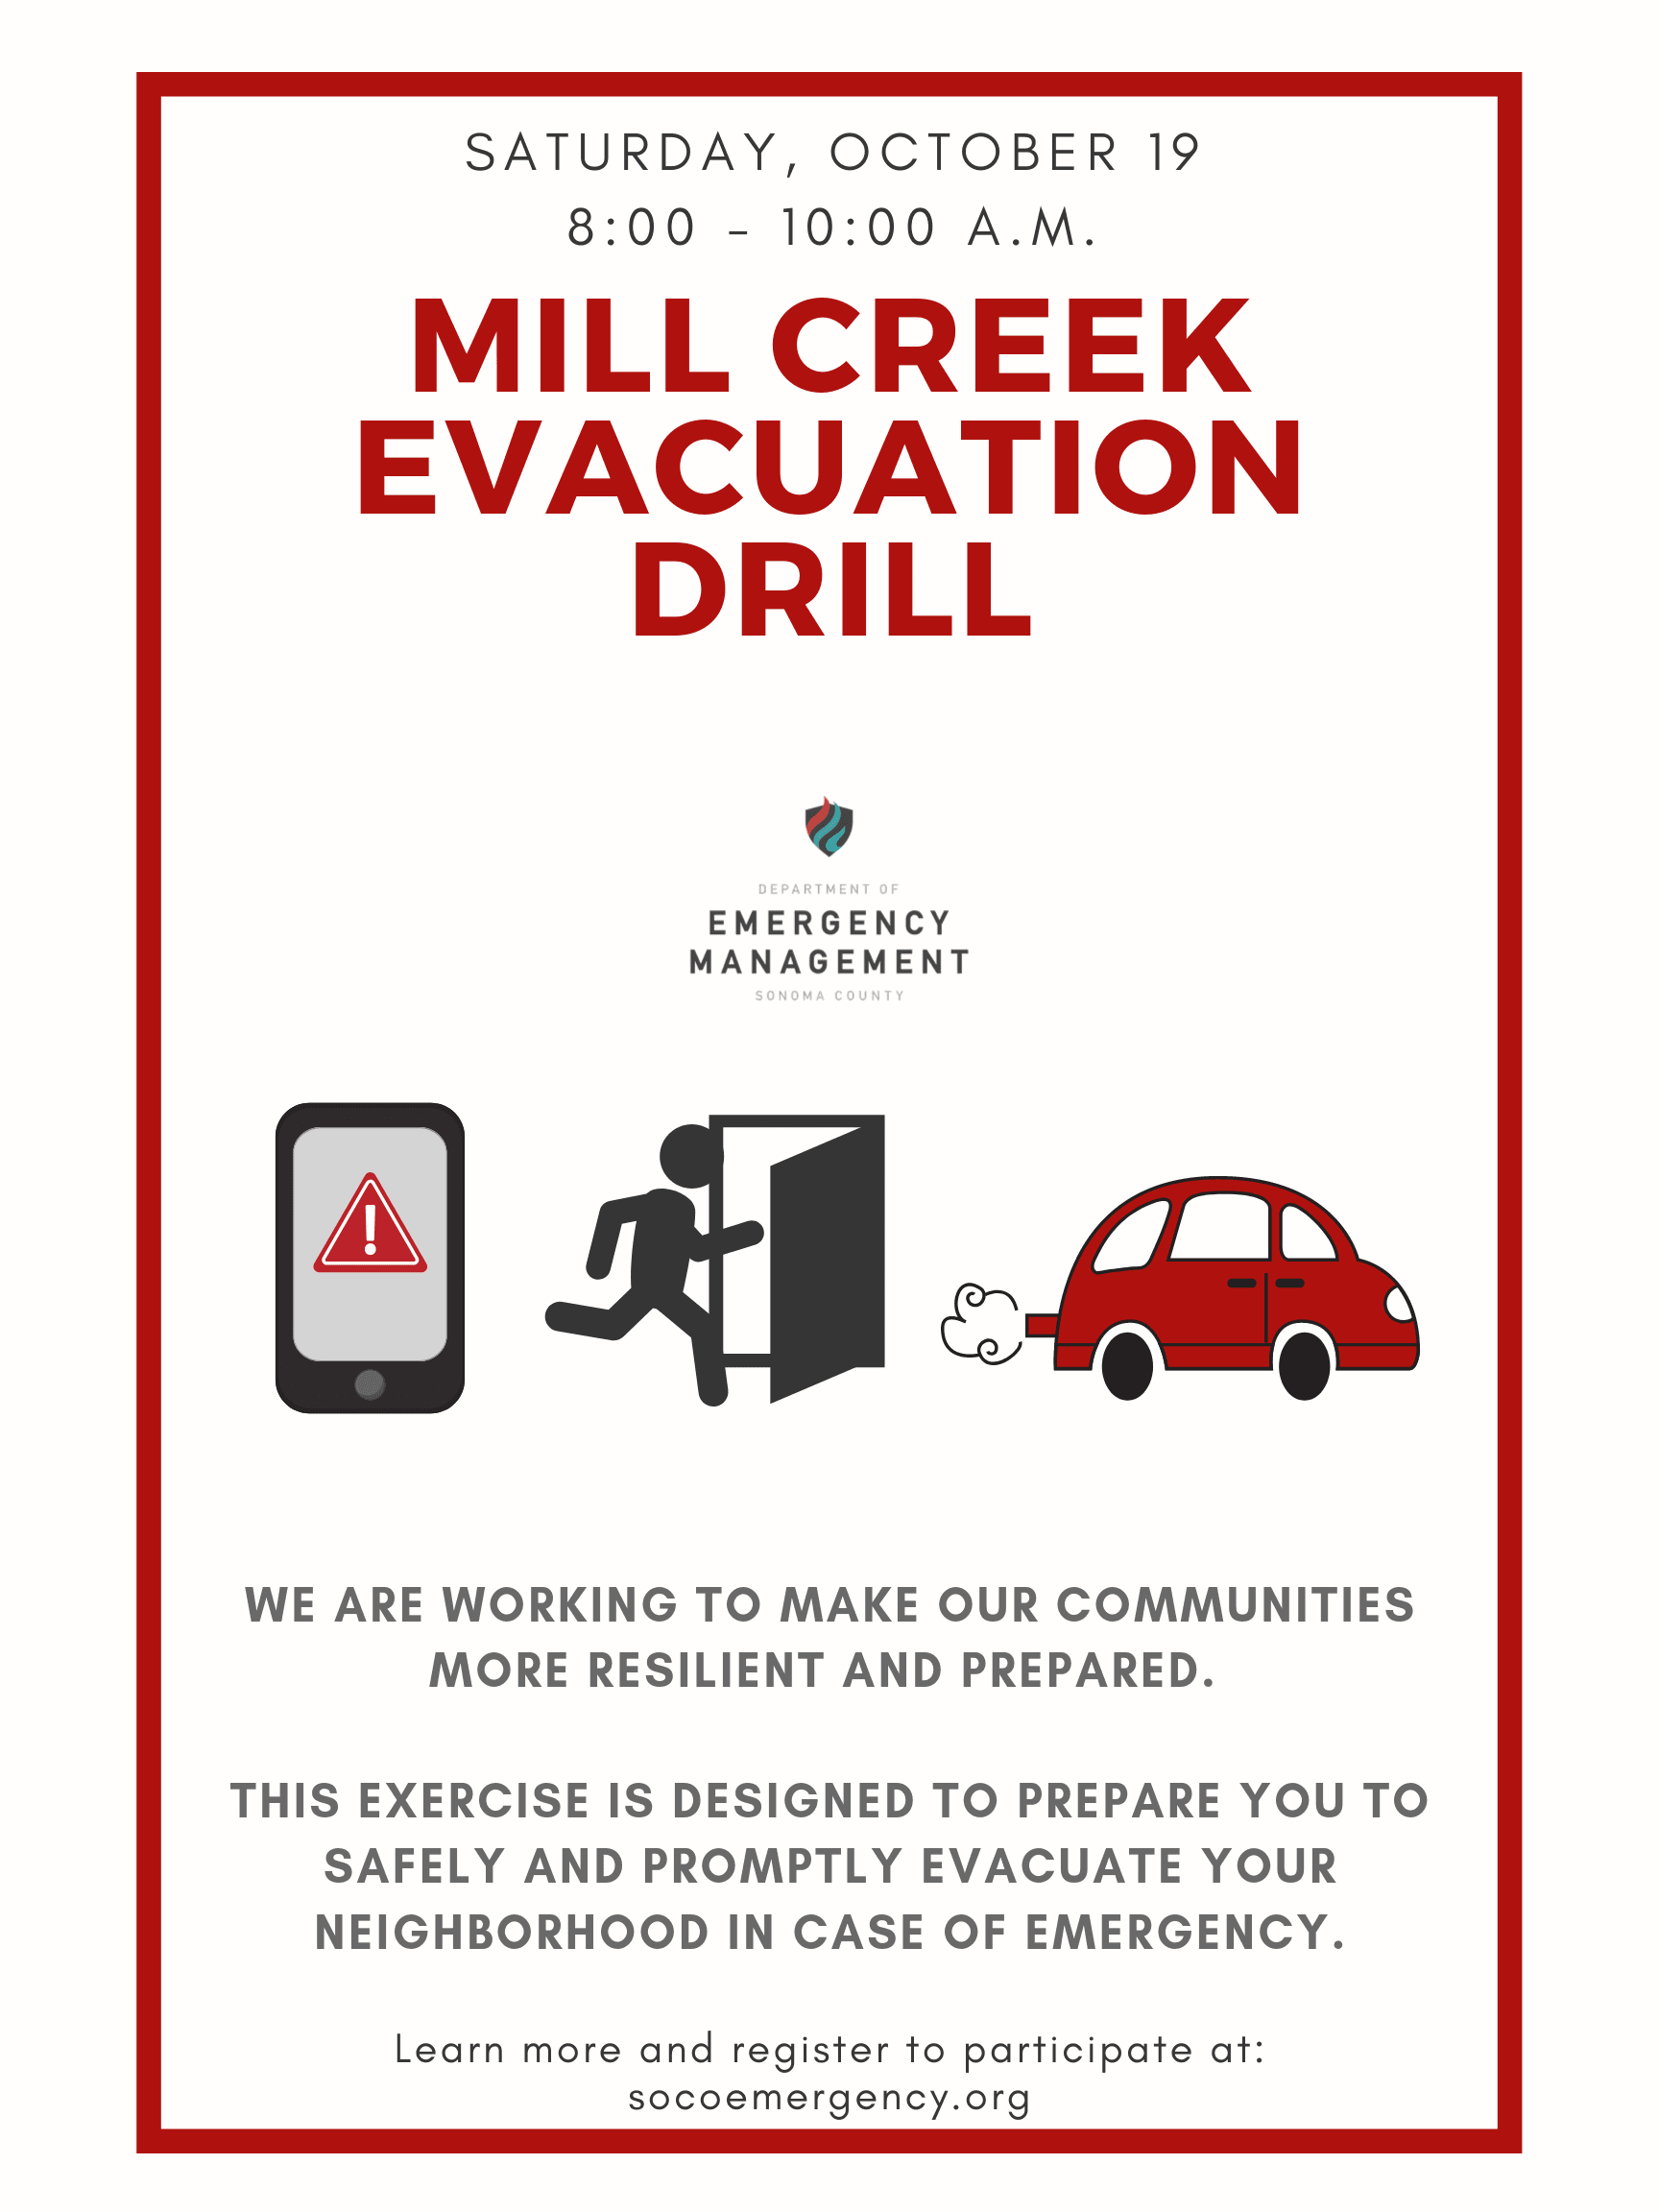 Information on Mill Creek Evacuation Drill Exercise